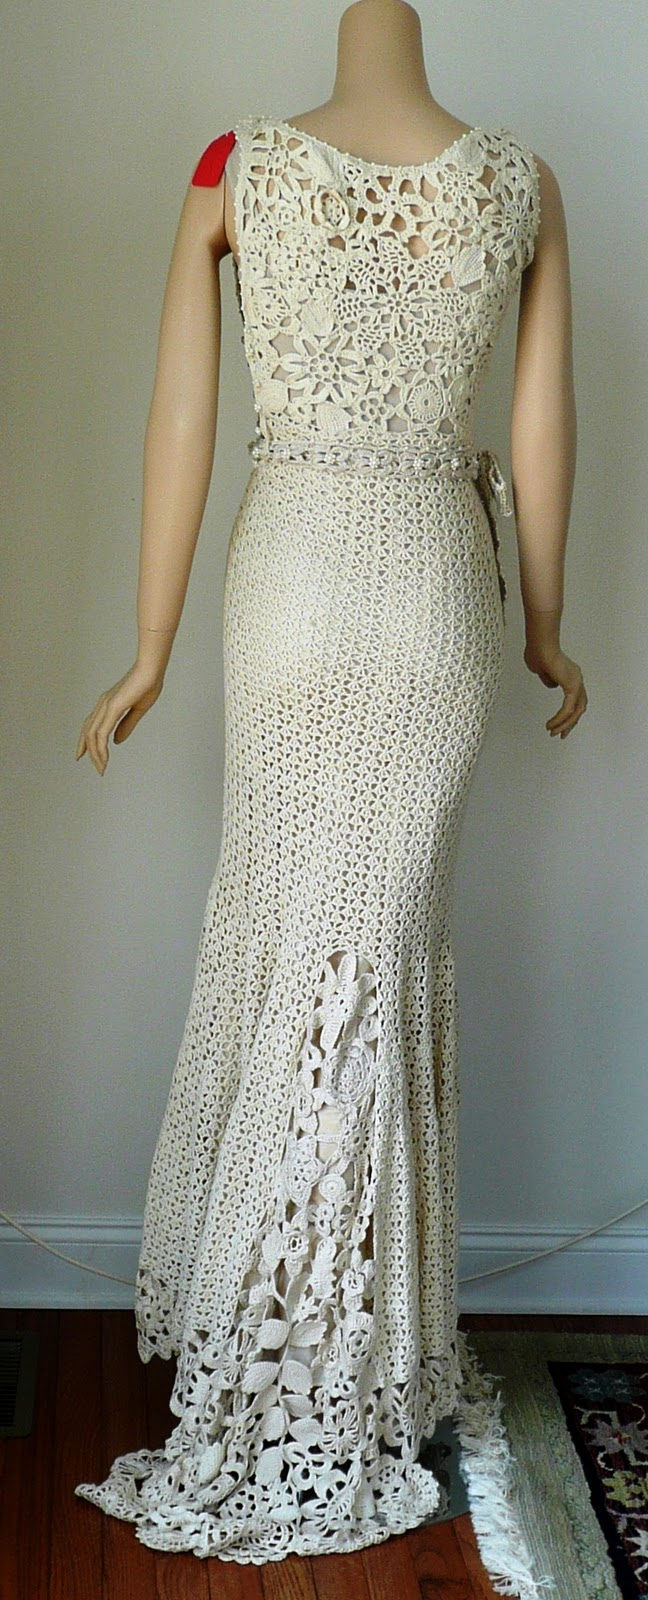 Crochet Stitches For Dresses : love is being silly together: Gorgeous Crochet Dress